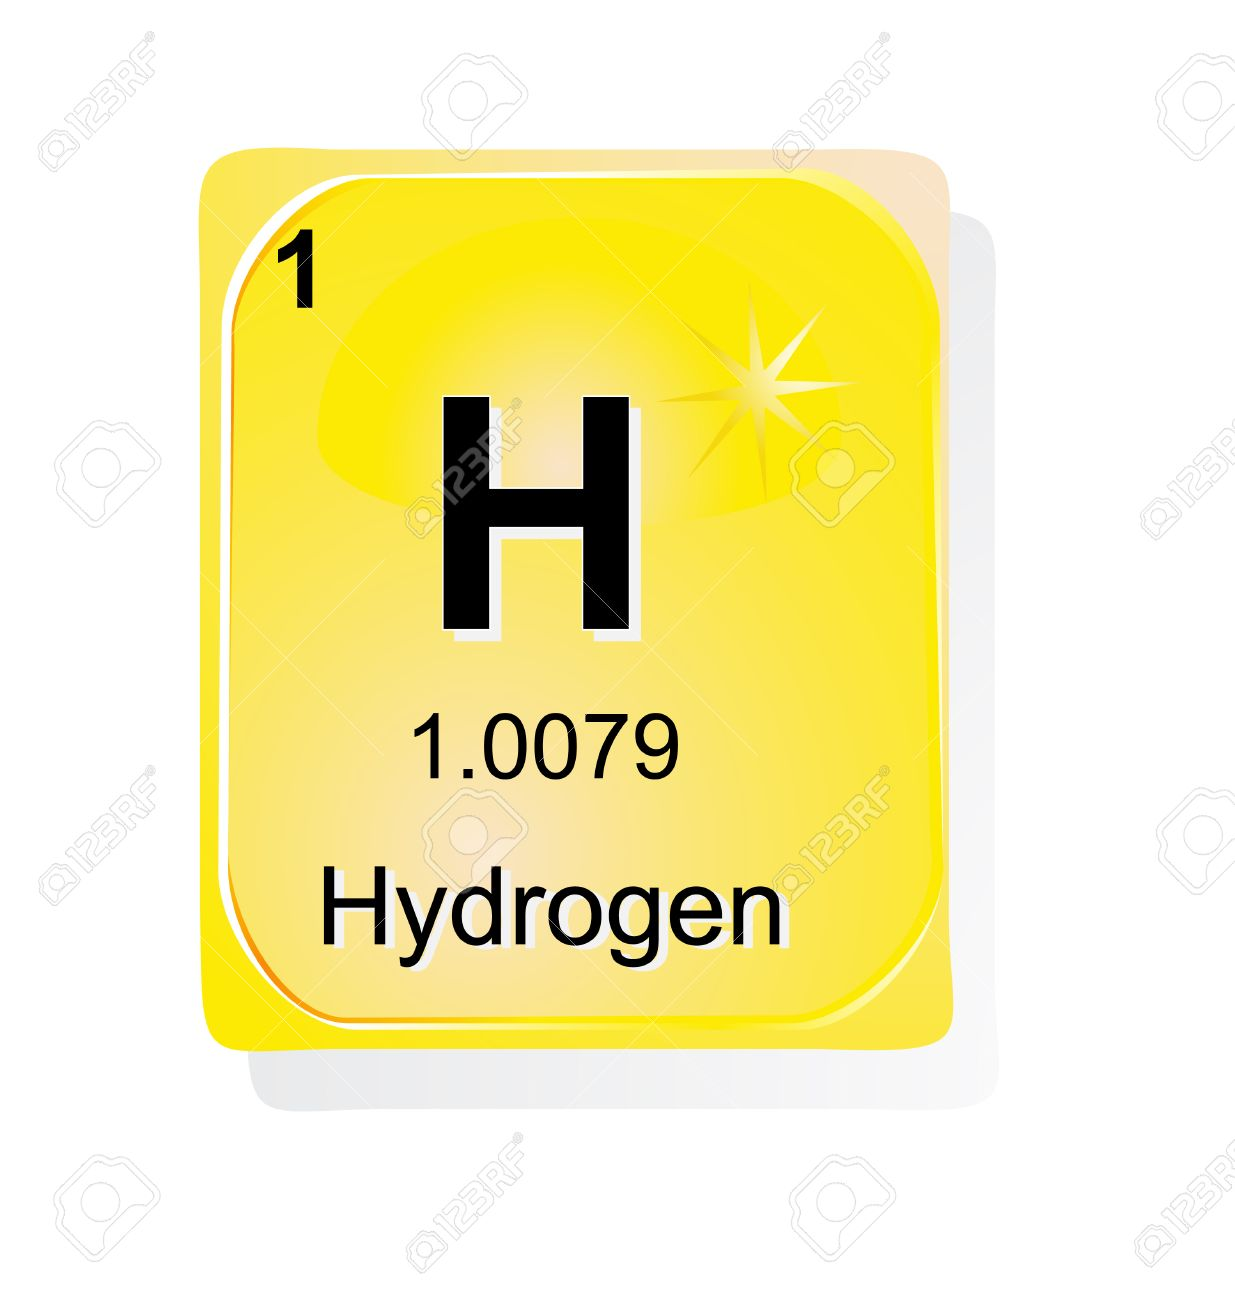 Barium symbol periodic table images periodic table images hydrogen chemical element with atomic number symbol and weight hydrogen chemical element with atomic number symbol gamestrikefo Choice Image